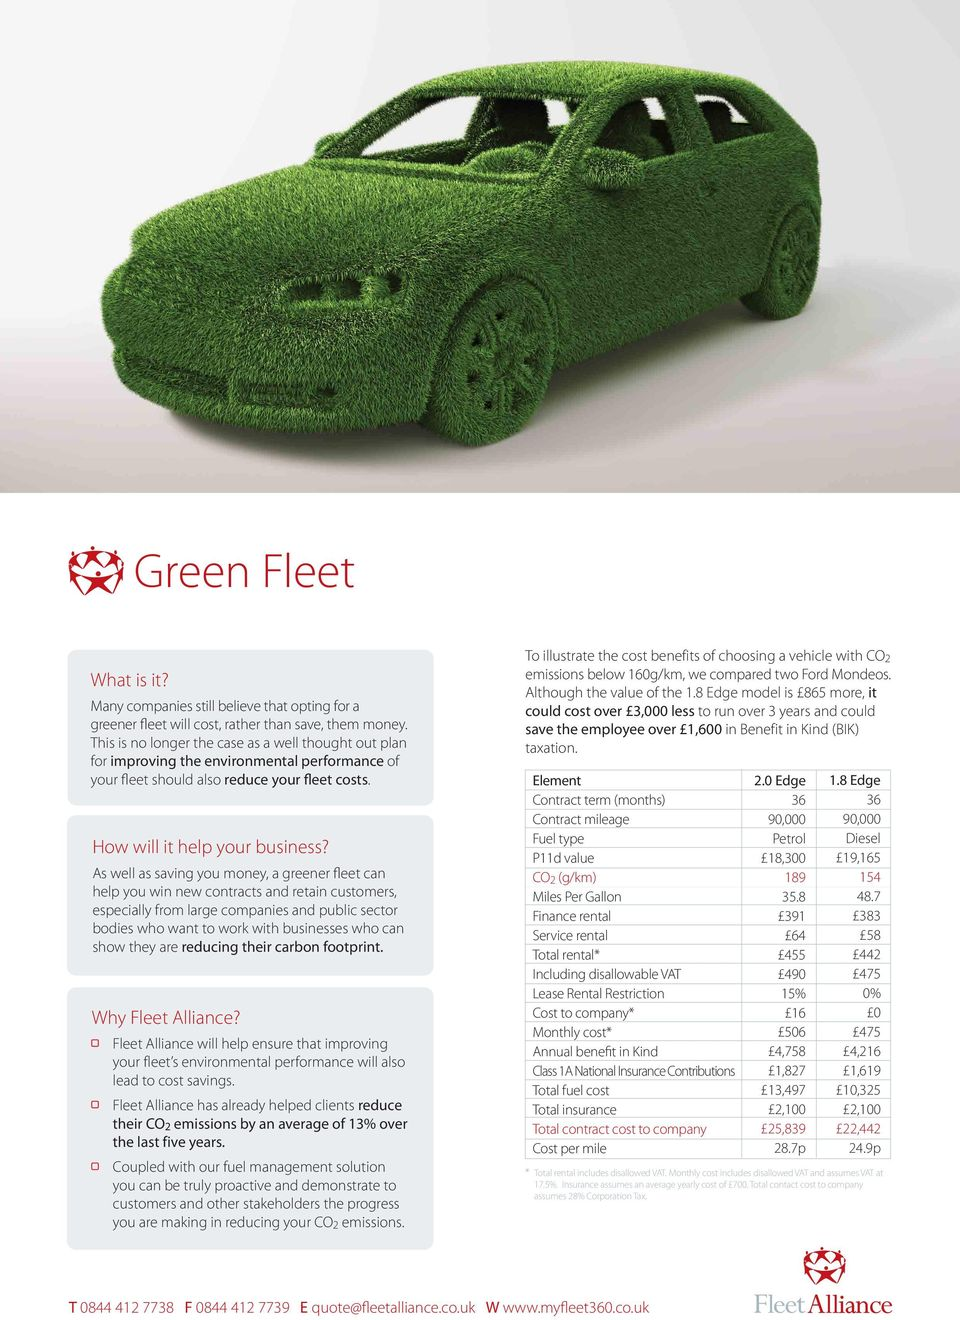 As well as saving you money, a greener fleet can help you win new contracts and retain customers, especially from large companies and public sector bodies who want to work with businesses who can